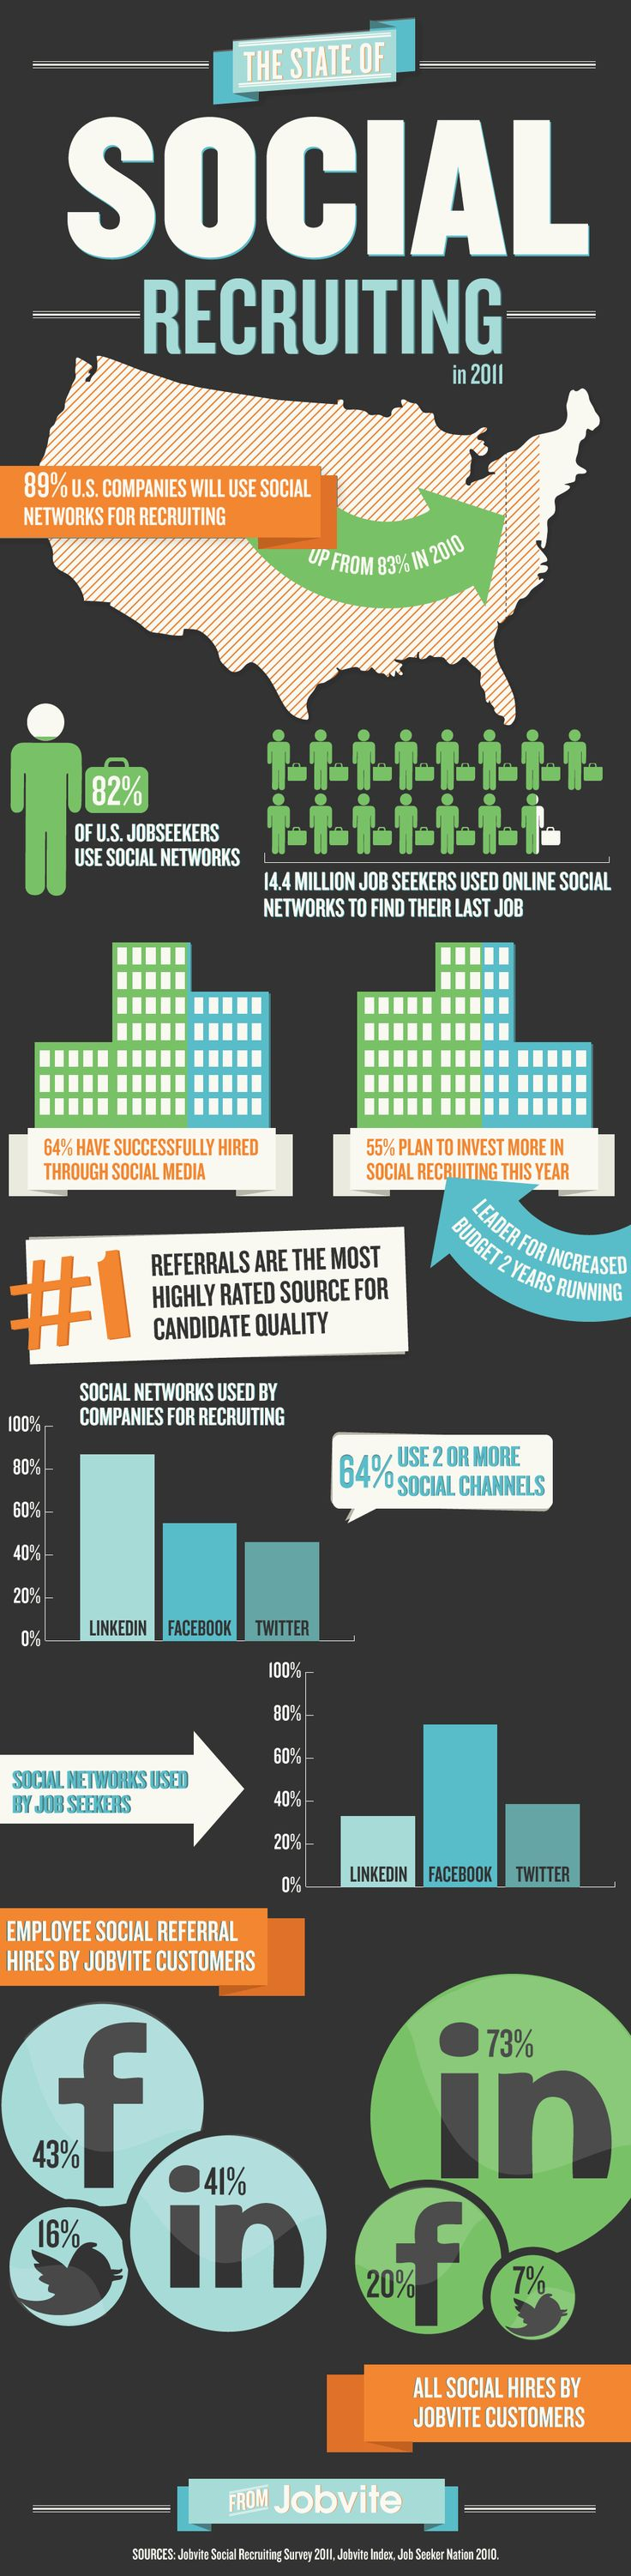 The State Of Social Recruiting in 2011 by Jobvite. More LinkedIn tips at http://getonthemap.us/linkedin/blog